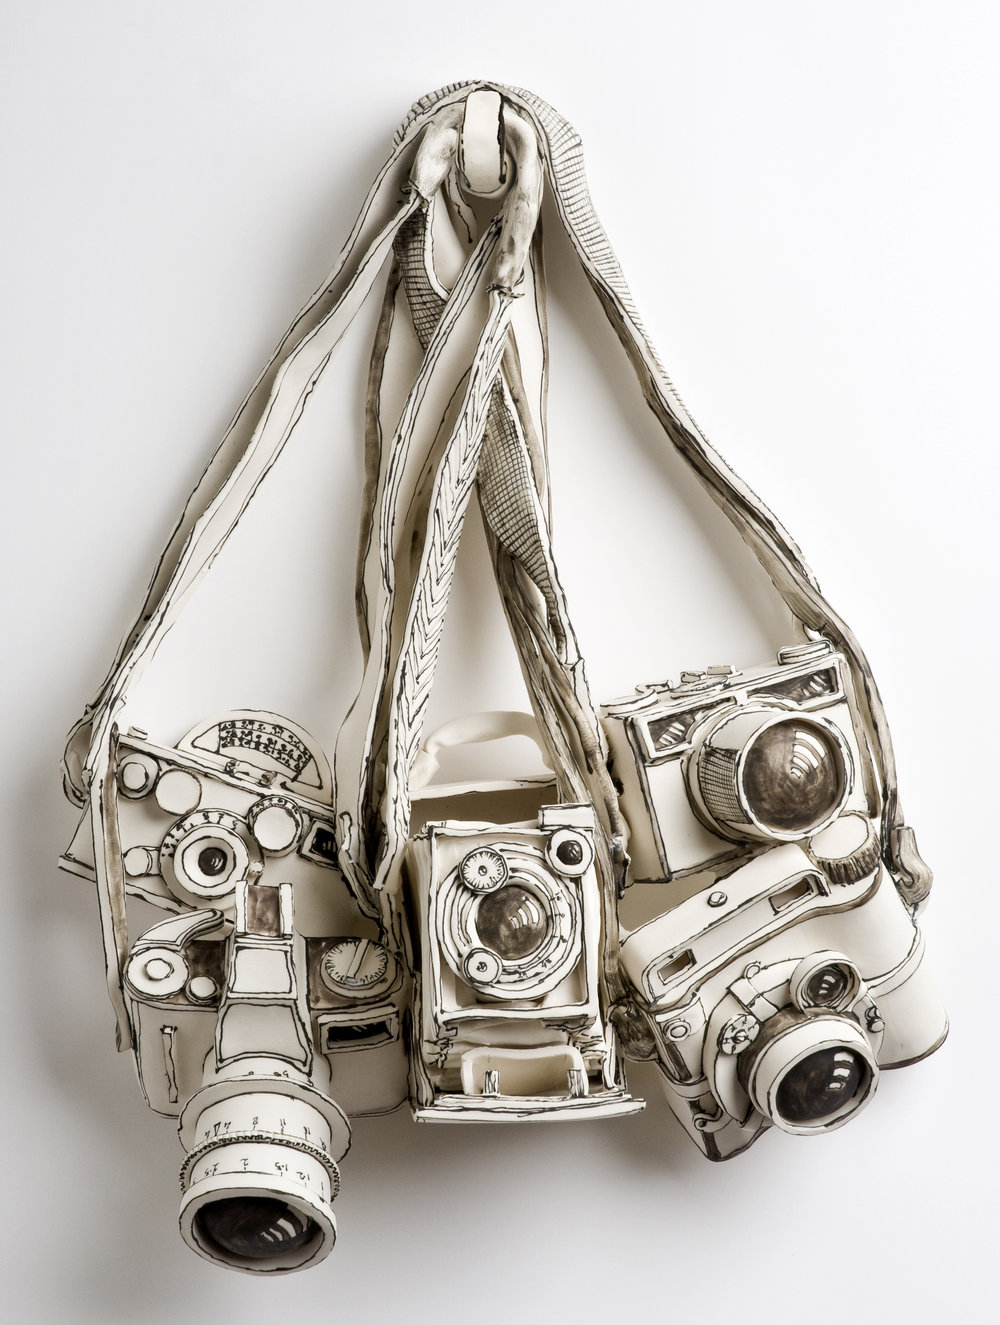 Katharine Morling  - Old Cameras  - 2019 - Porcelain and Black Stain - available on commission